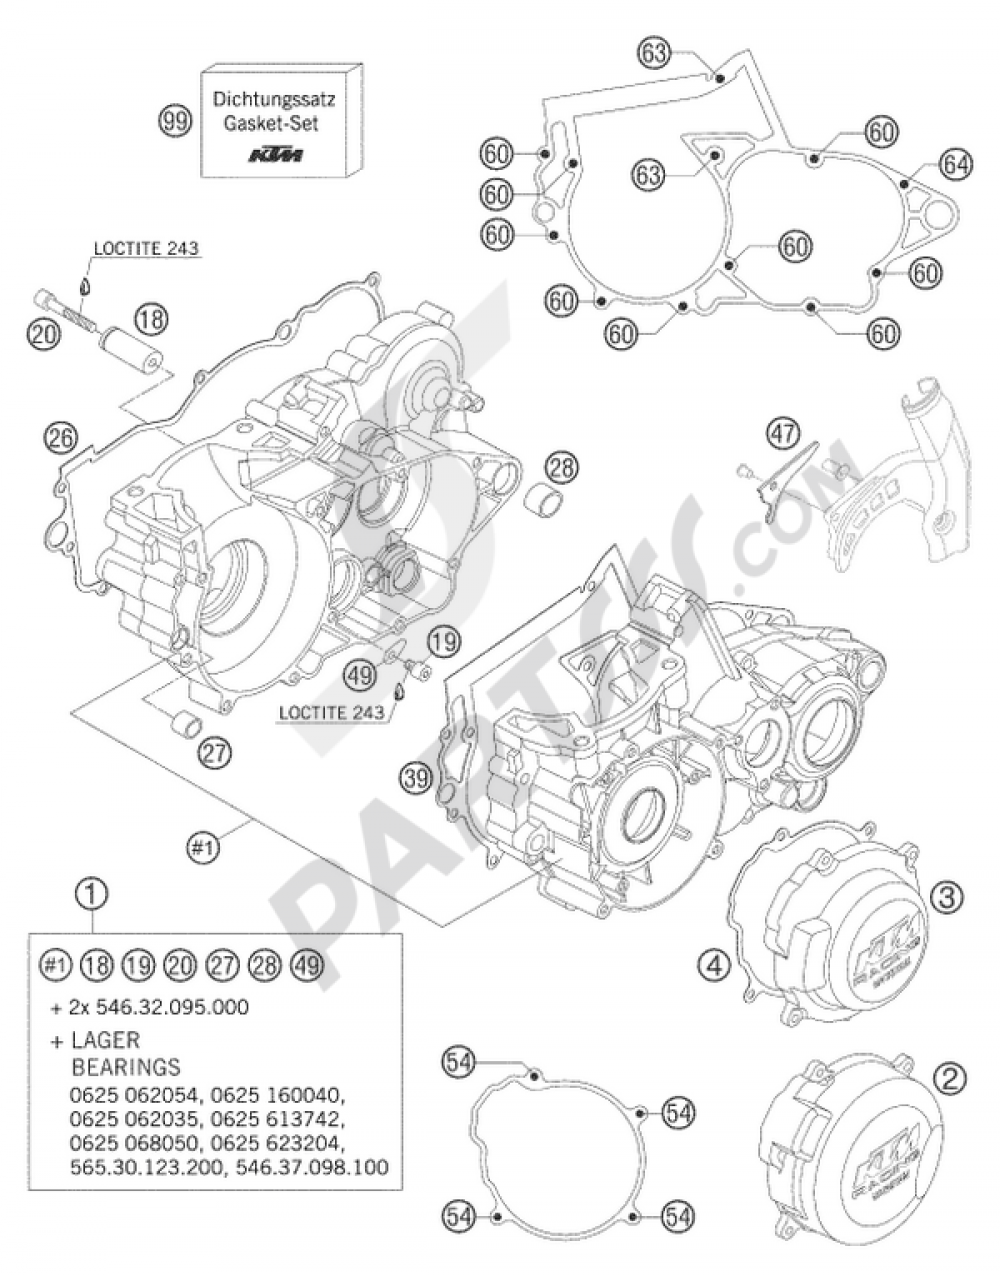 ENGINE CASE 250/300 KTM 250 EXC SIX-DAYS 2004 EU